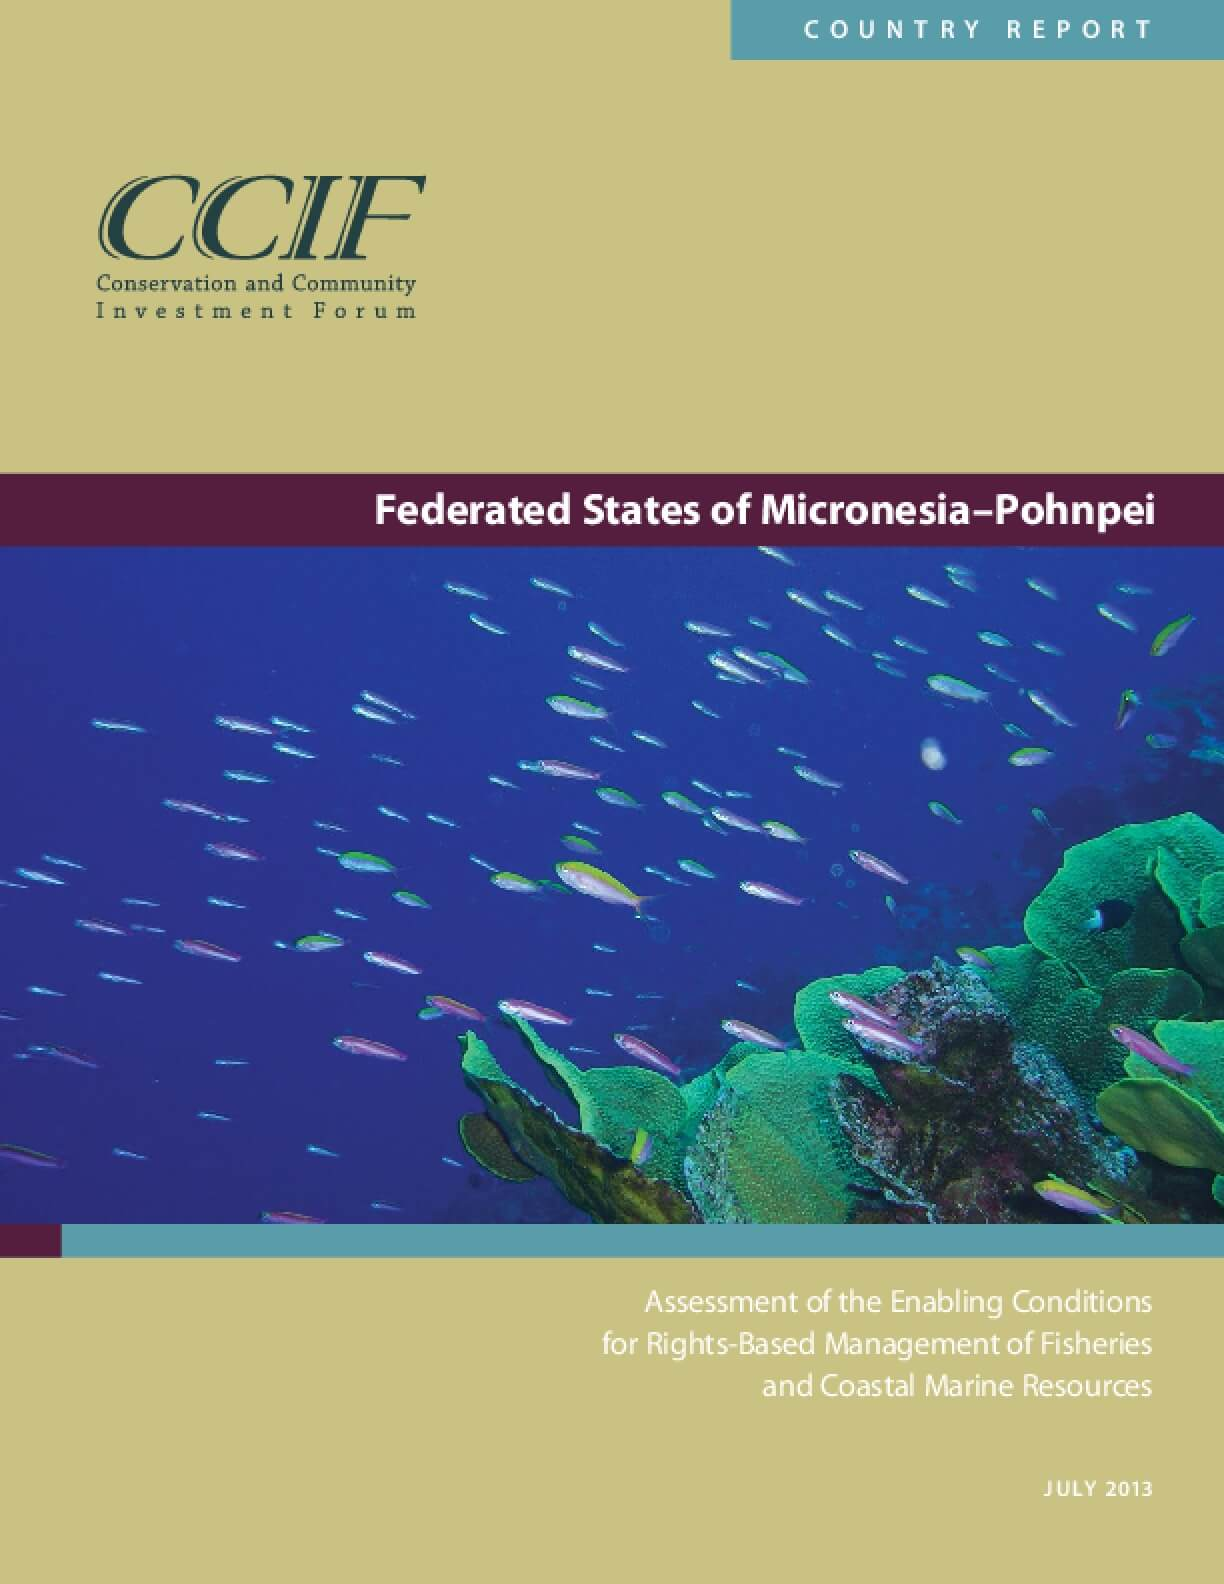 Federated States of Micronesia–Pohnpei Country Report